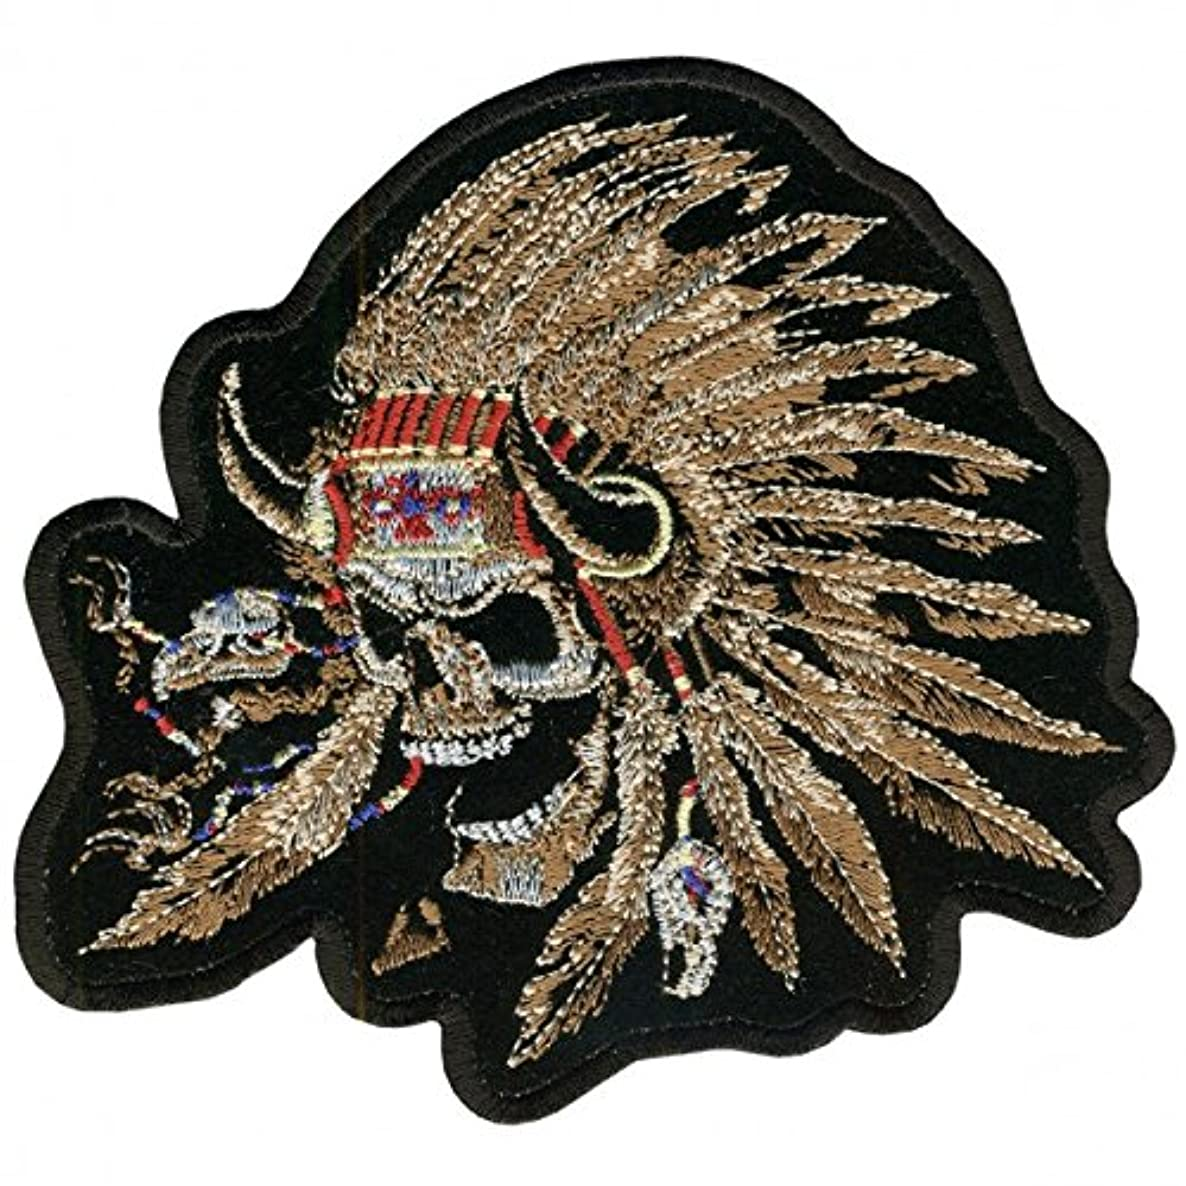 Hot Leathers, INDIAN SKULL NATIVE AMERICAN WARRIOR SKULL, Iron-On / Saw-On Rayon PATCH - 12